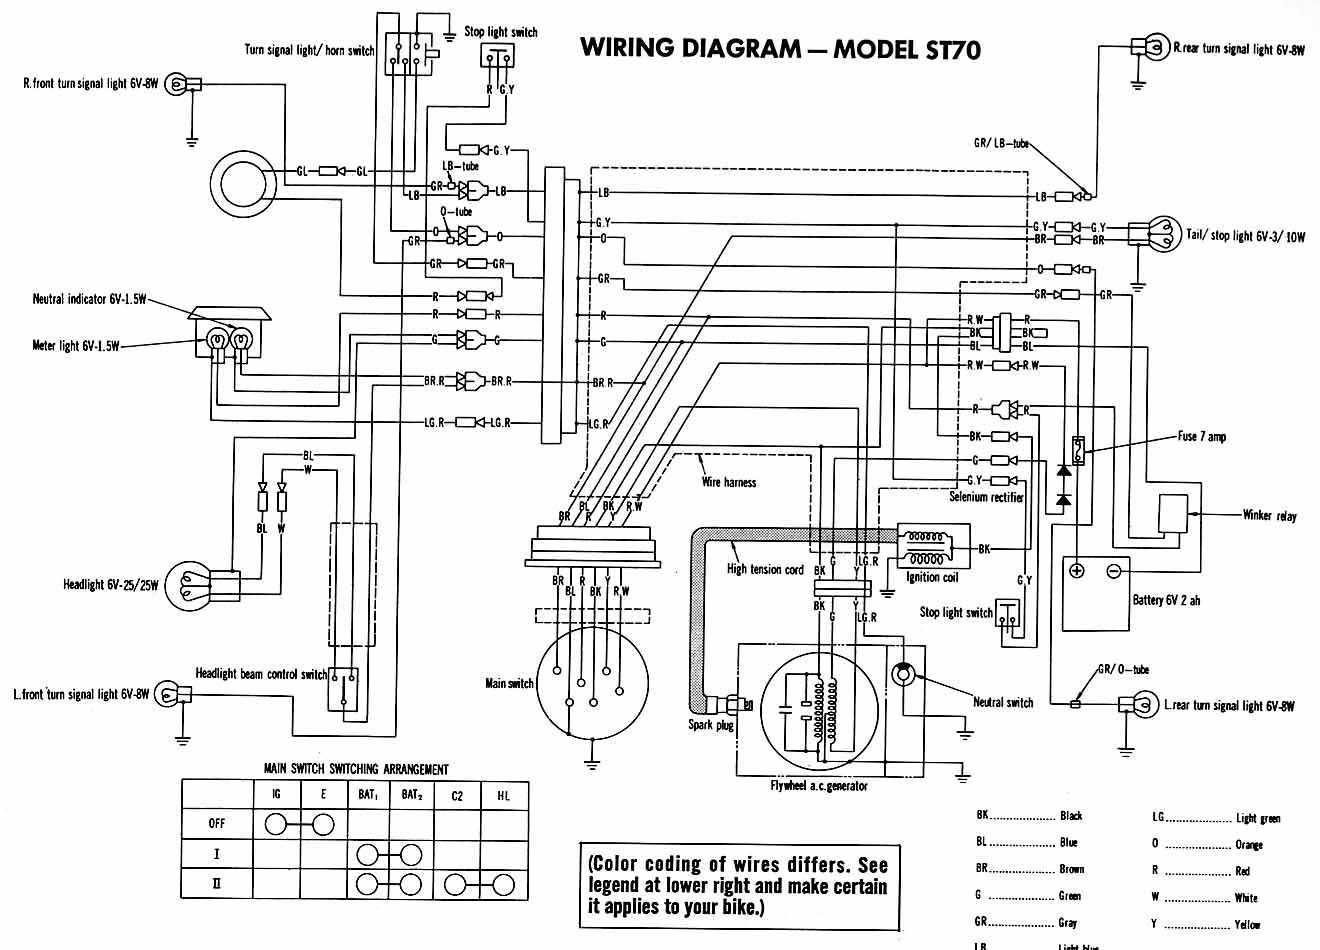 honda st70 motorcycle wiring diagram | all about wiring ... wiring diagram of motorcycle wiring diagram of honda livo